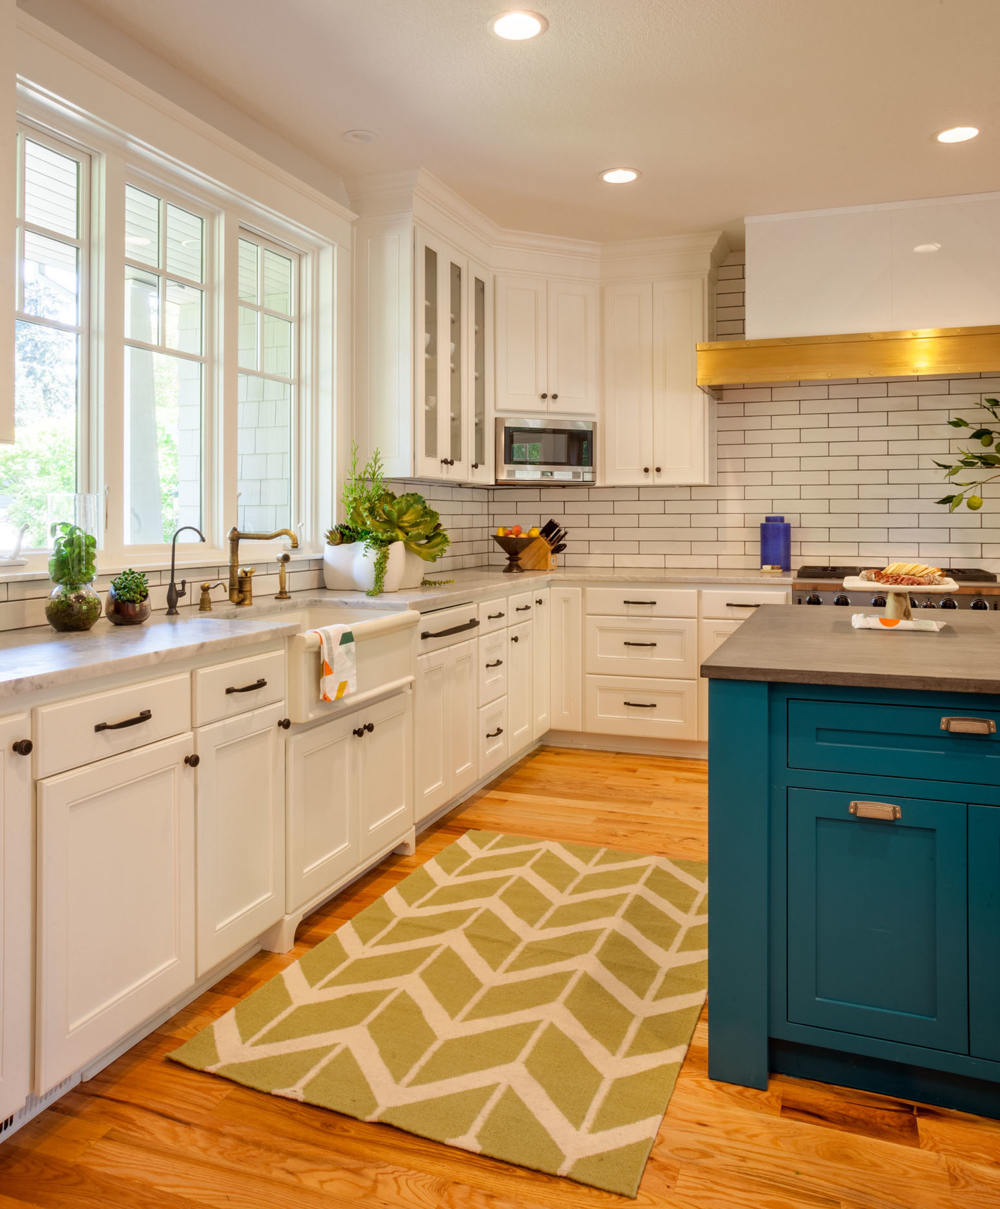 White Kitchen Cabinets Images: 20 Gorgeous Kitchen Cabinet Color Ideas For Every Type Of